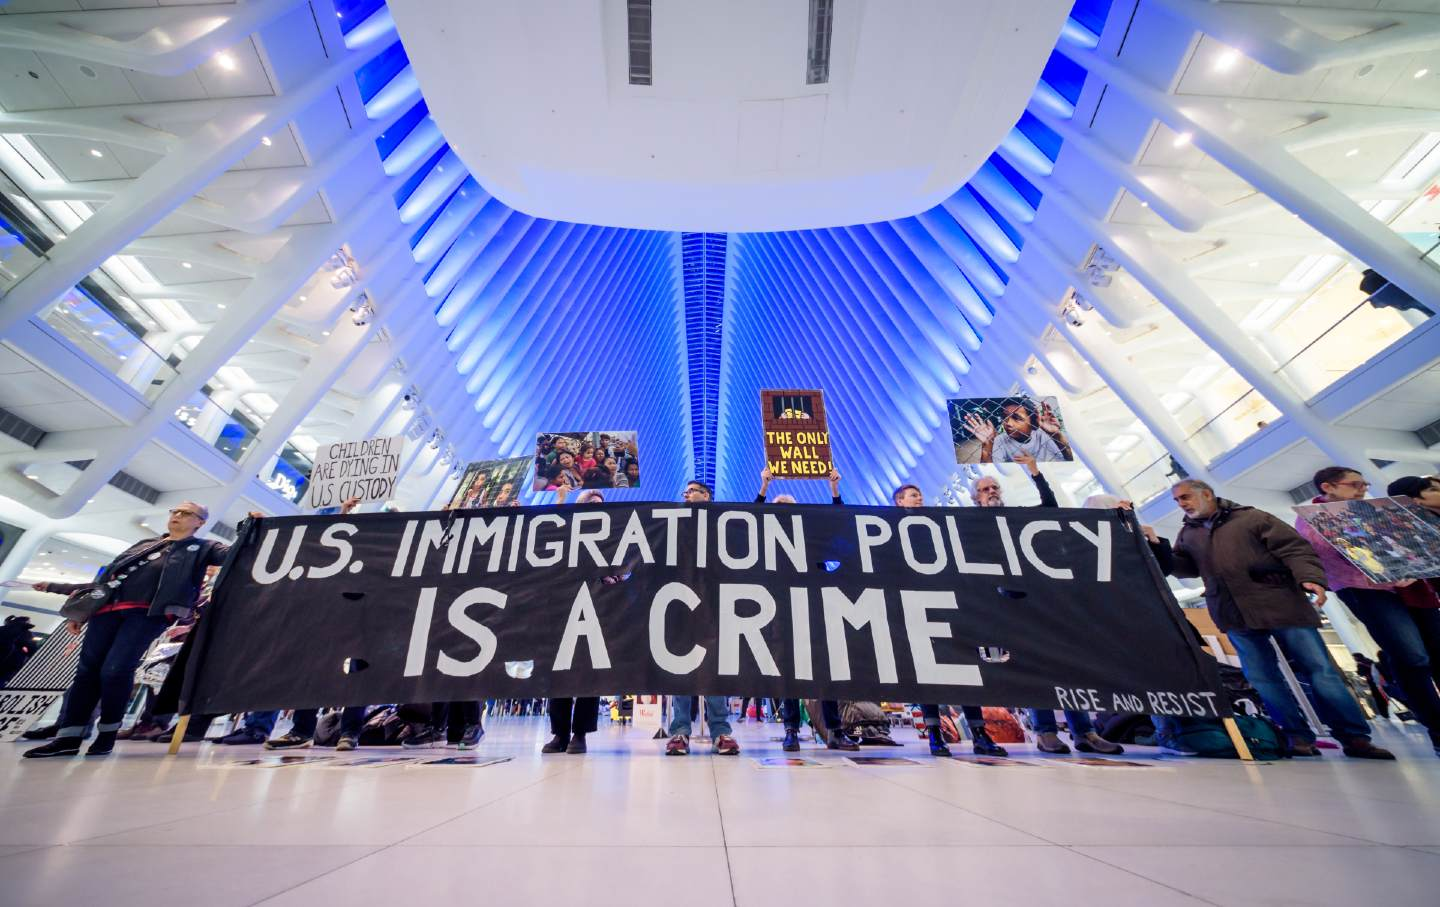 Activists held a banner reading